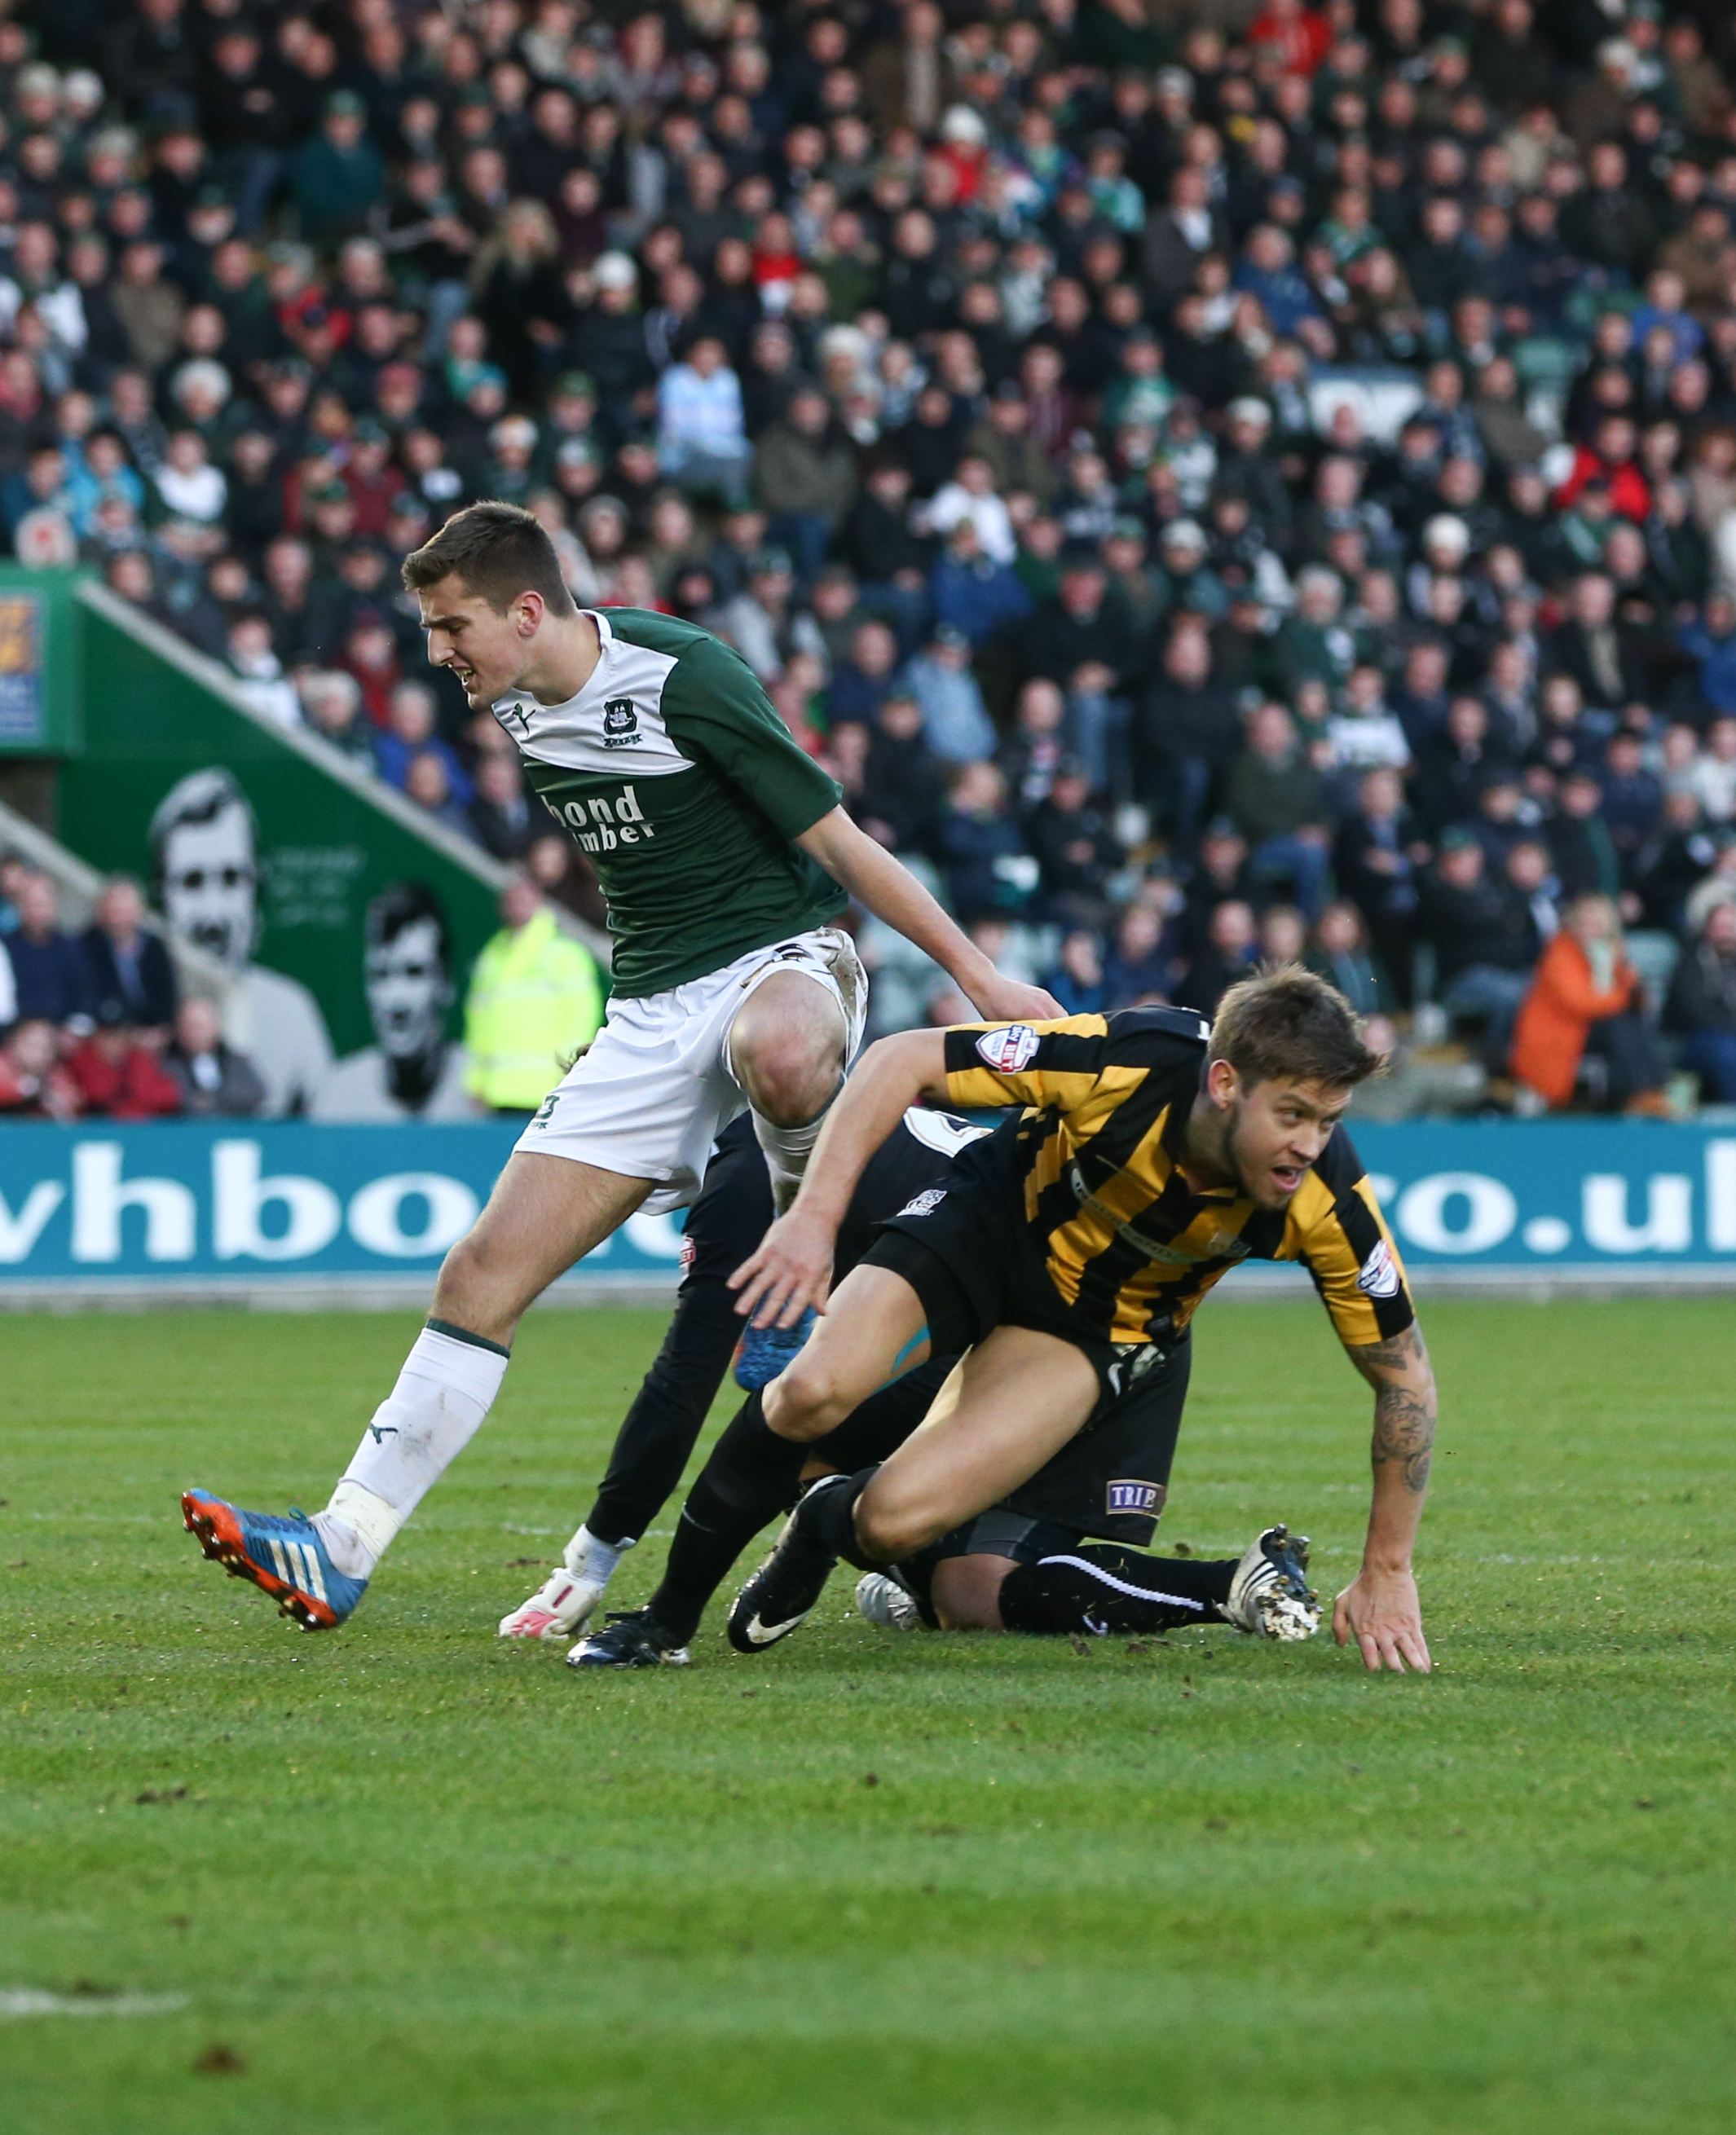 Kevan Hurst fires home on his return to the team at Plymouth Argyle